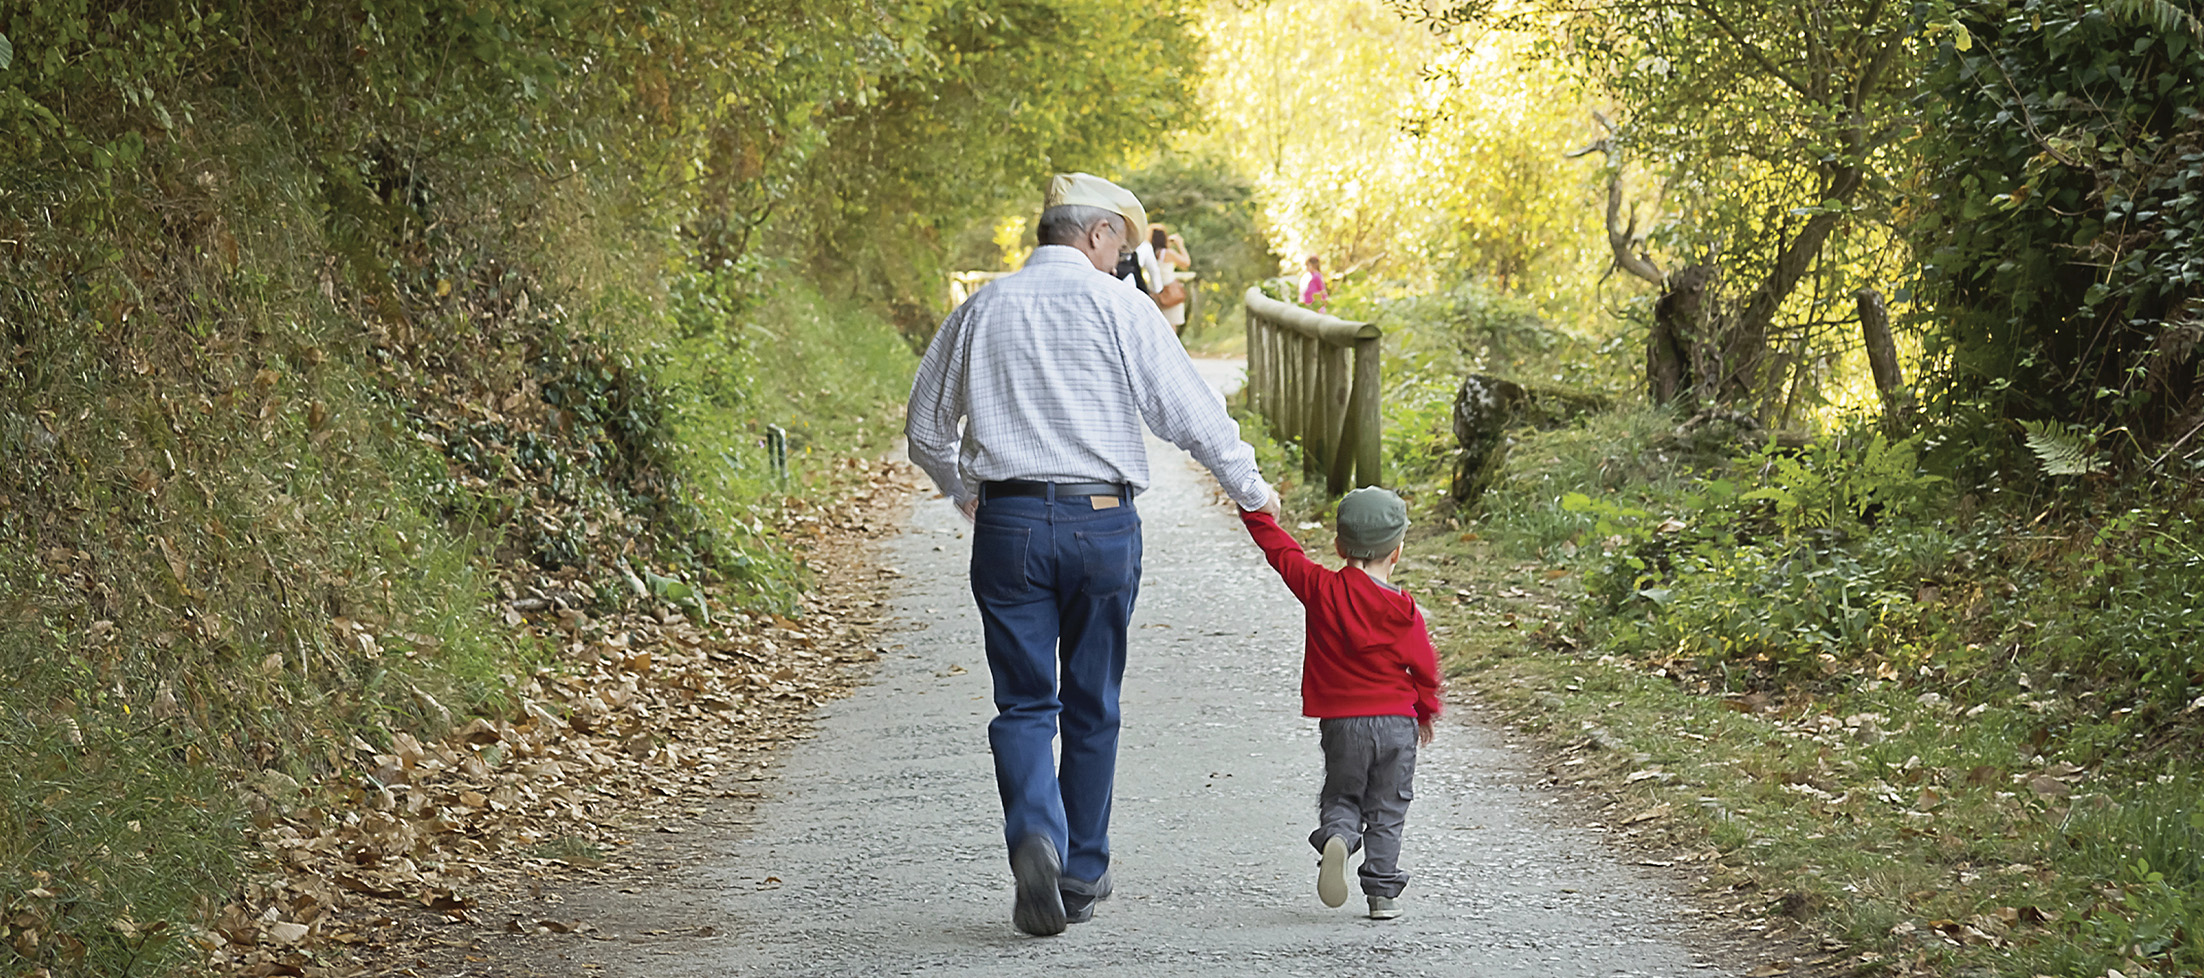 grandpa holds grandson's hand on a walk